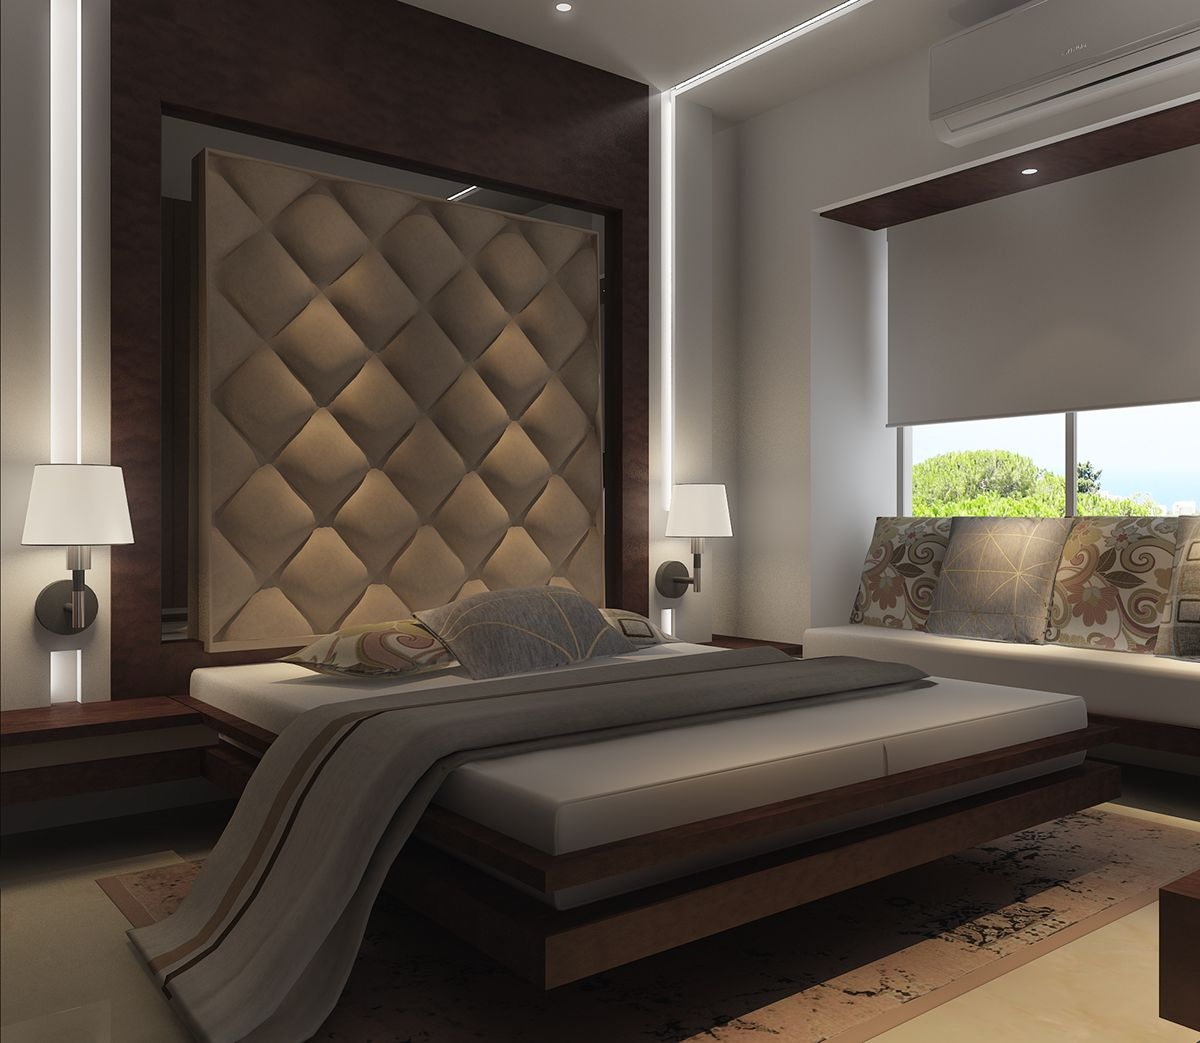 Residential Interior Design Ideas Of Modern Family Home: Residential 1 BHK On Behance